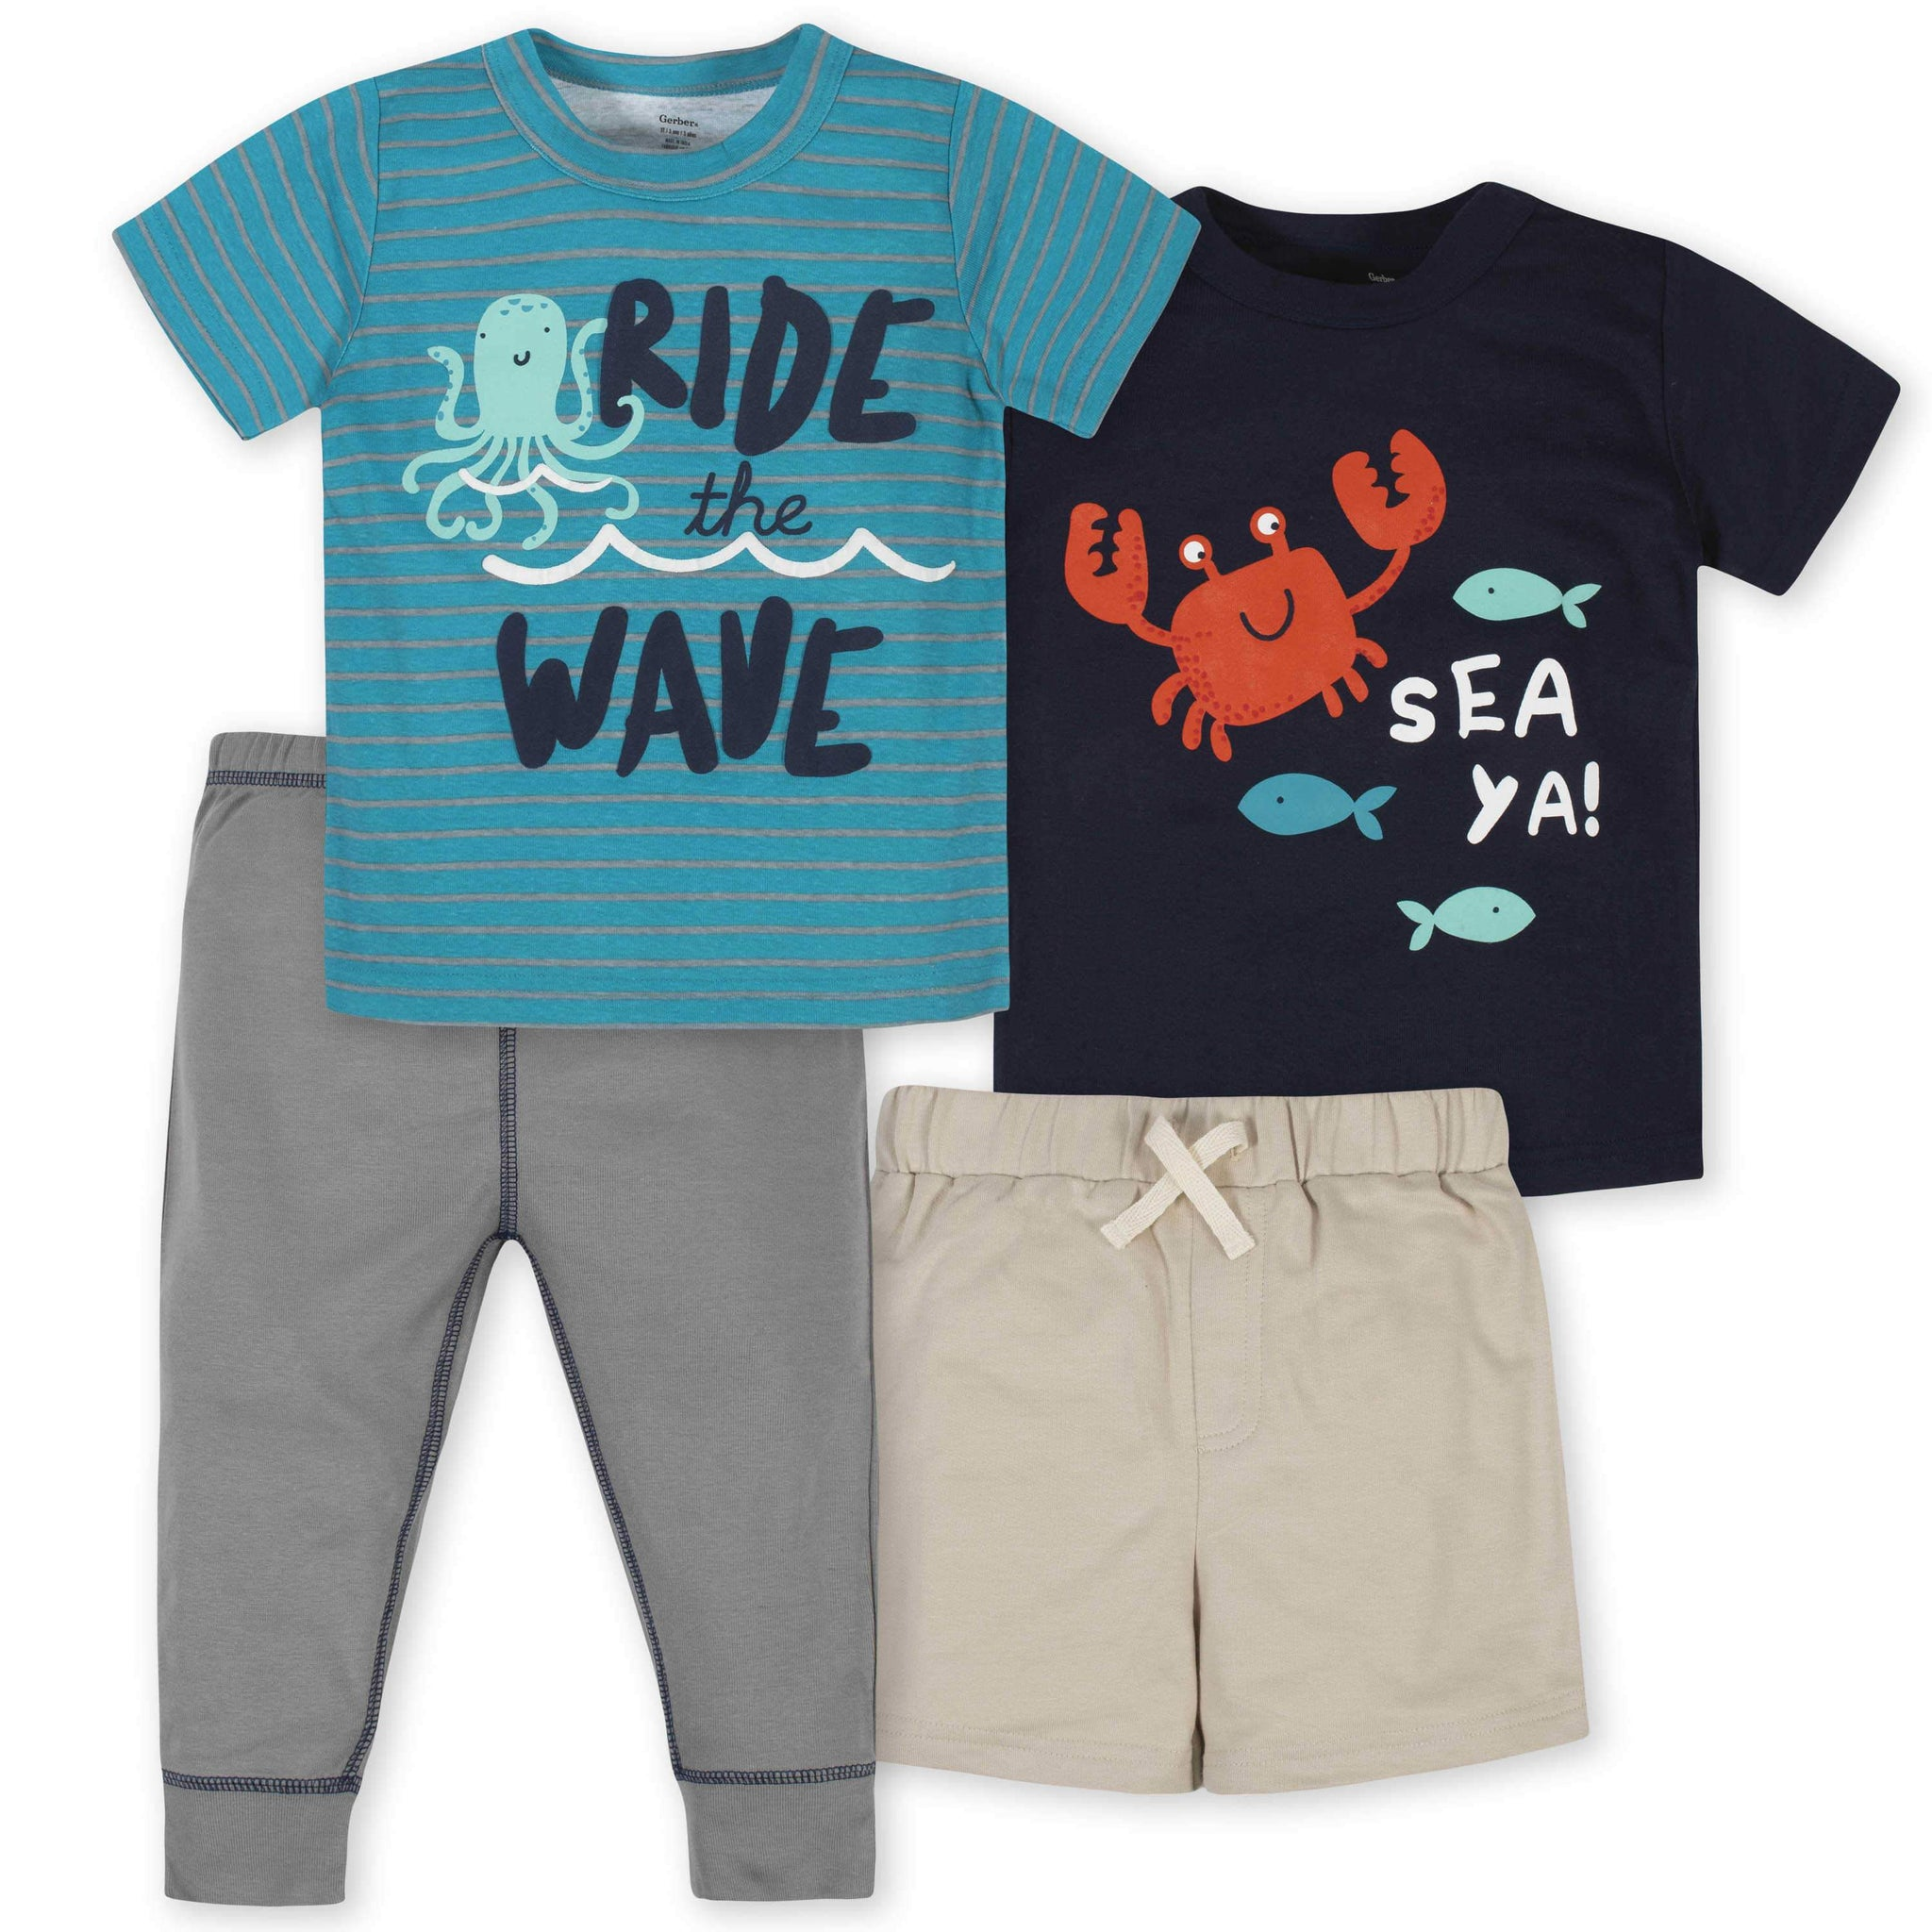 4-Piece Toddler Boys Sea Short, Shirts, and Active Pant Set